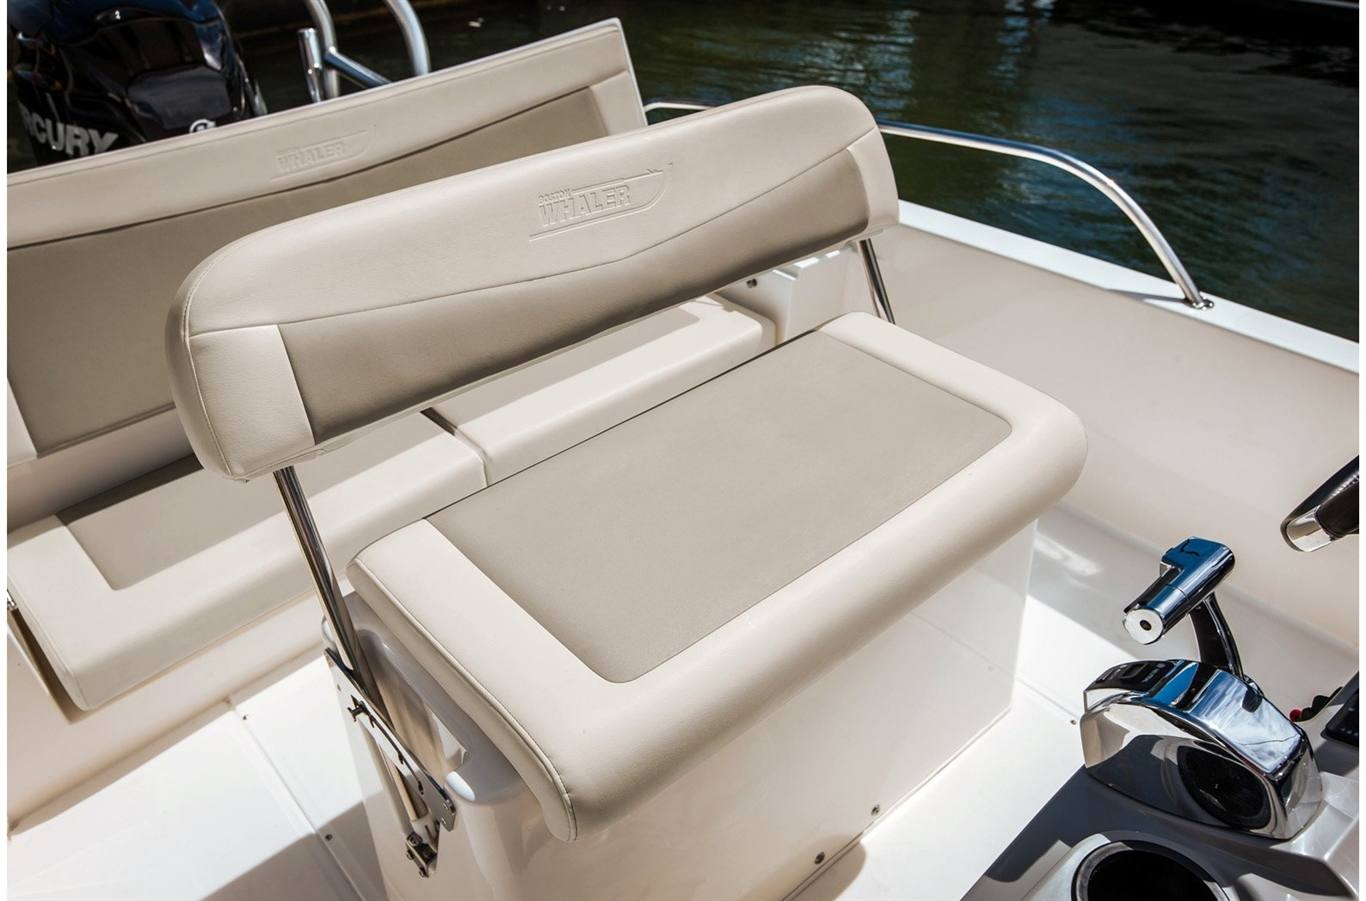 2018 Boston Whaler 210 Dauntless For Sale In Brielle, Nj Mccarthys 2018  Boston Whaler 210 Dauntless Boston Whaler Dauntless Wiring Diagram